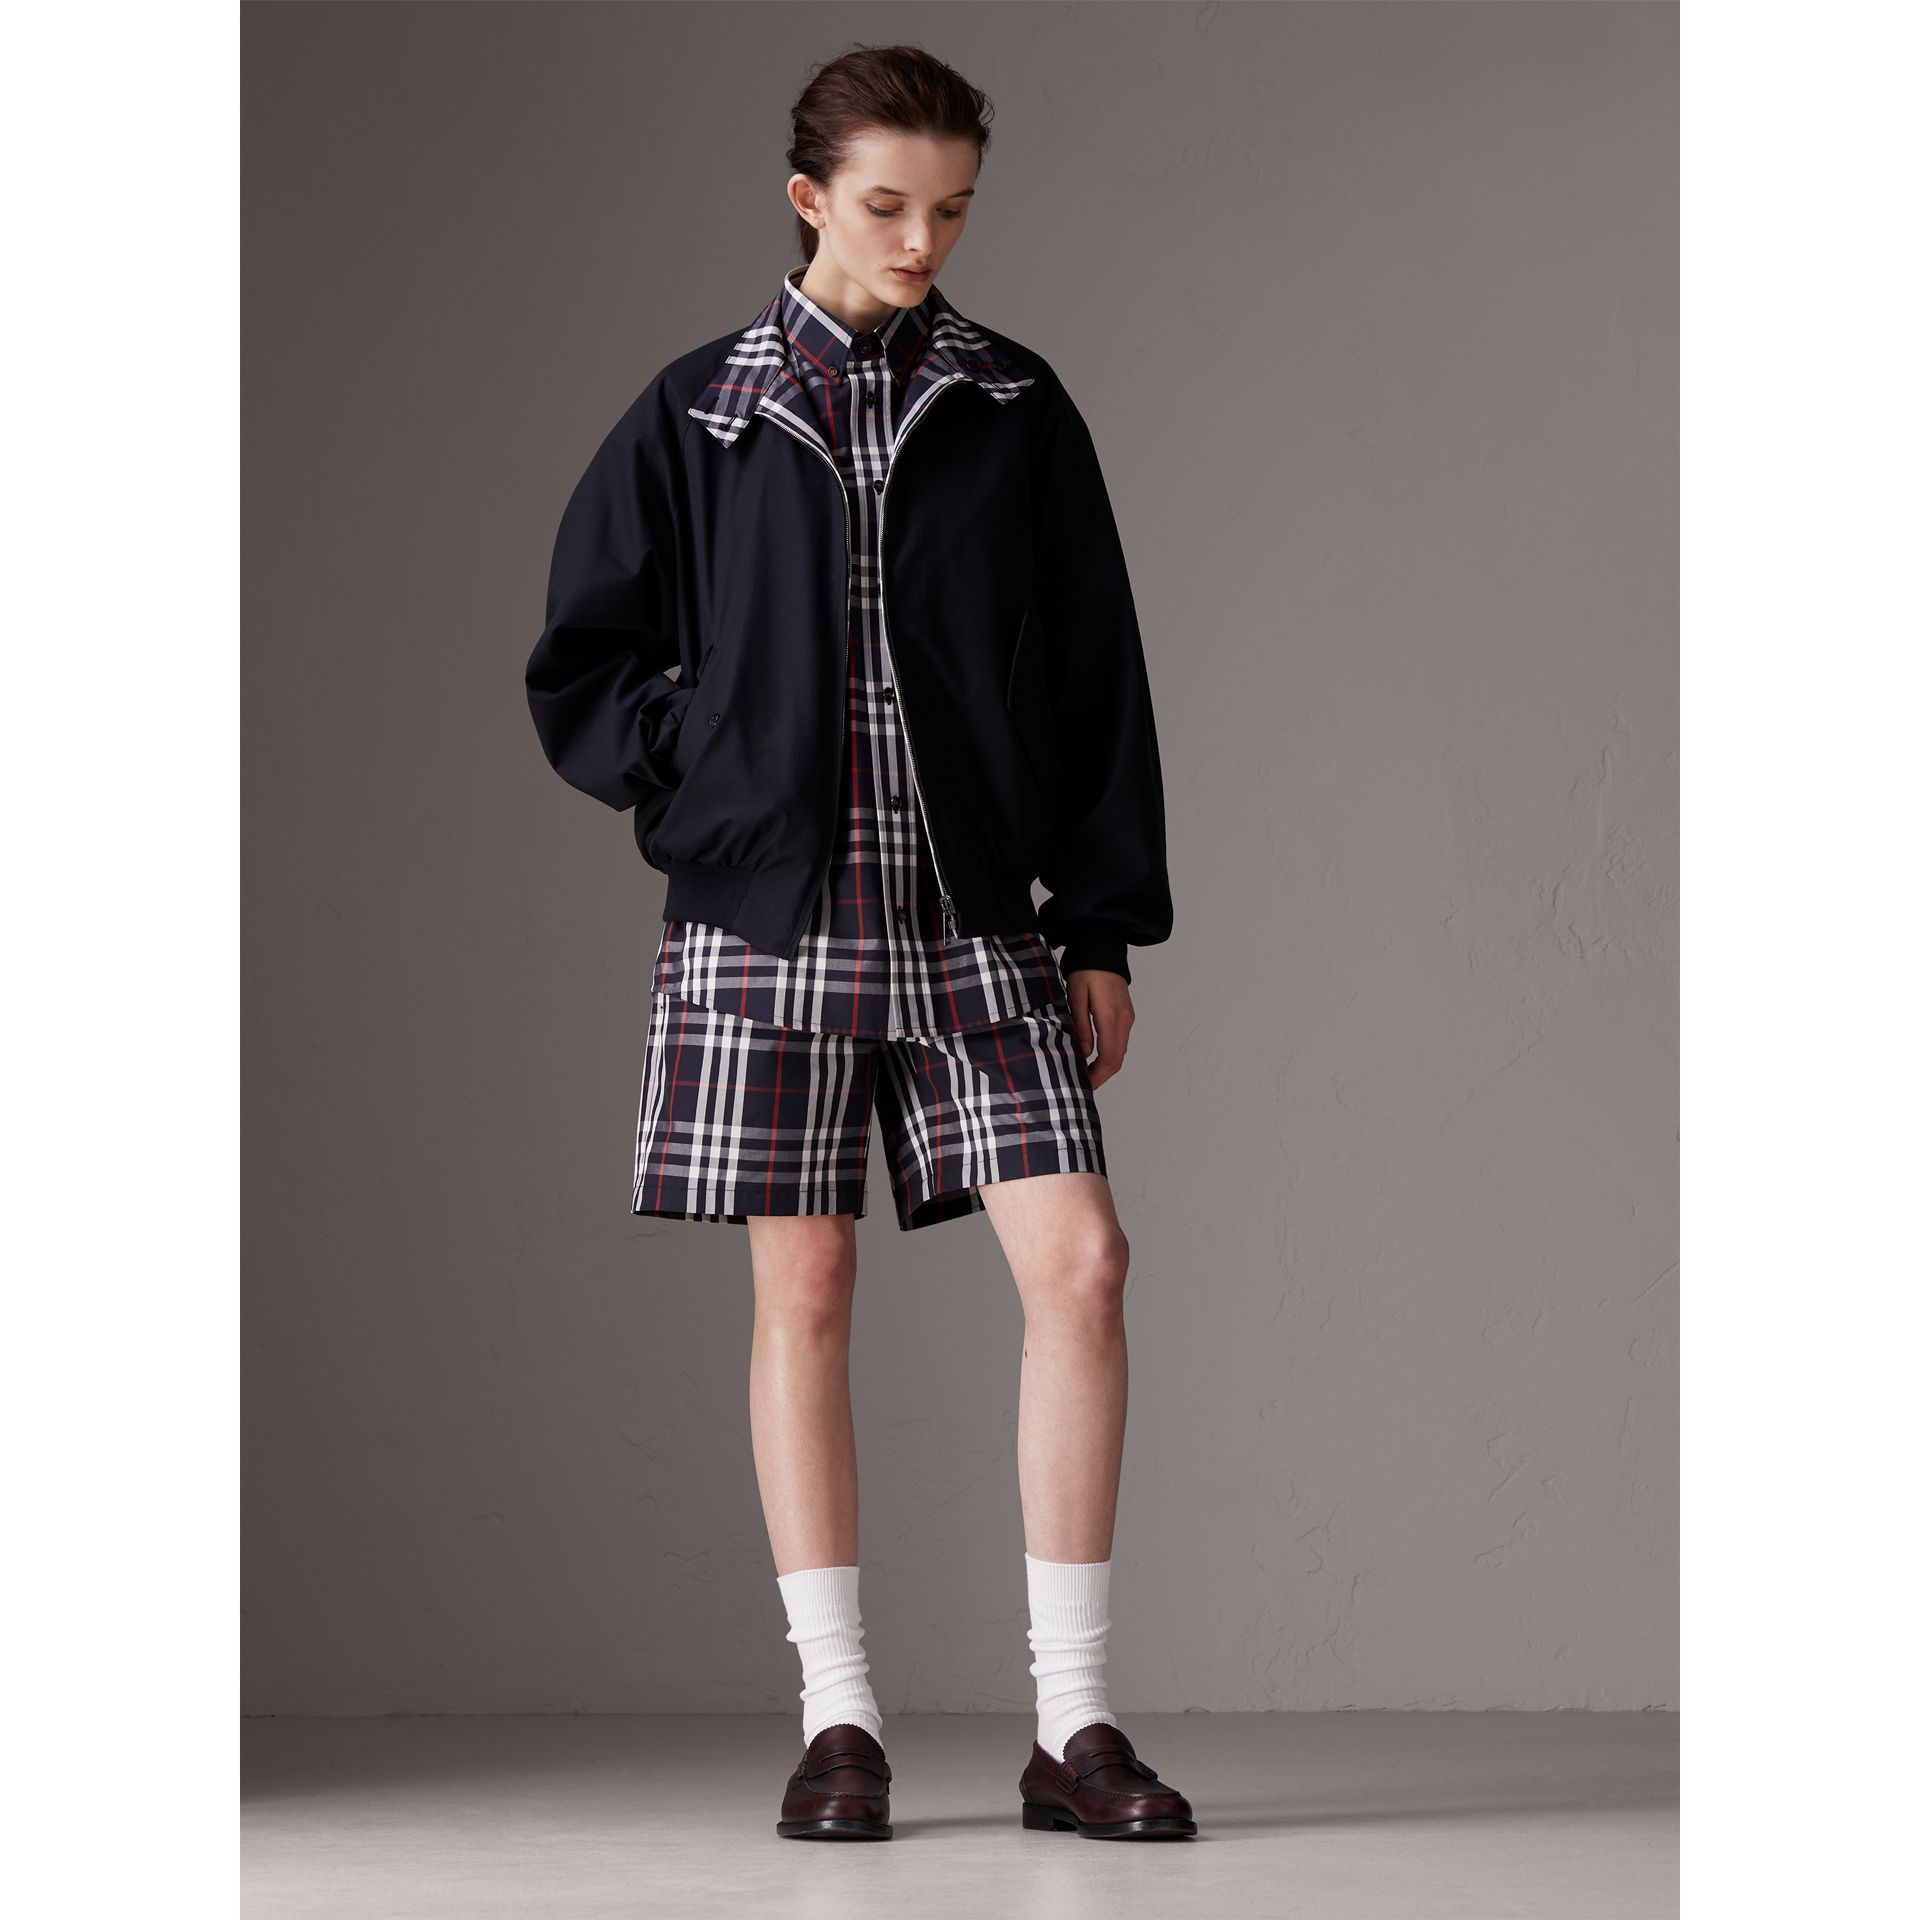 Veste Harrington réversible Gosha x Burberry (Marine) | Burberry - photo de la galerie 3